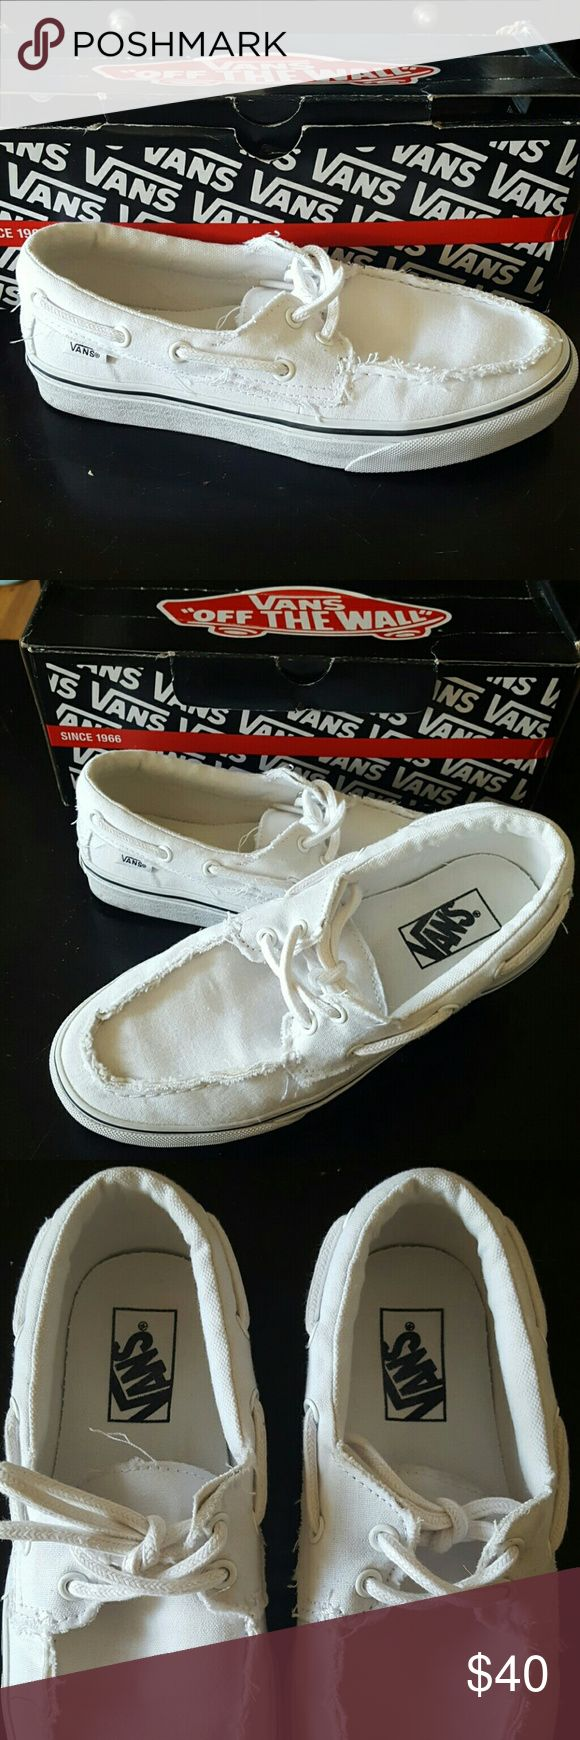 Vans Zapato Del Barco Shoes Women's Size 8, Van's Zapato Del Barco boat shoes.  'True White'. Worn 1x. NO SCUFFS, NO SMUDGES.  Not made in this color any longer. Comes with box. Vans Shoes Sneakers